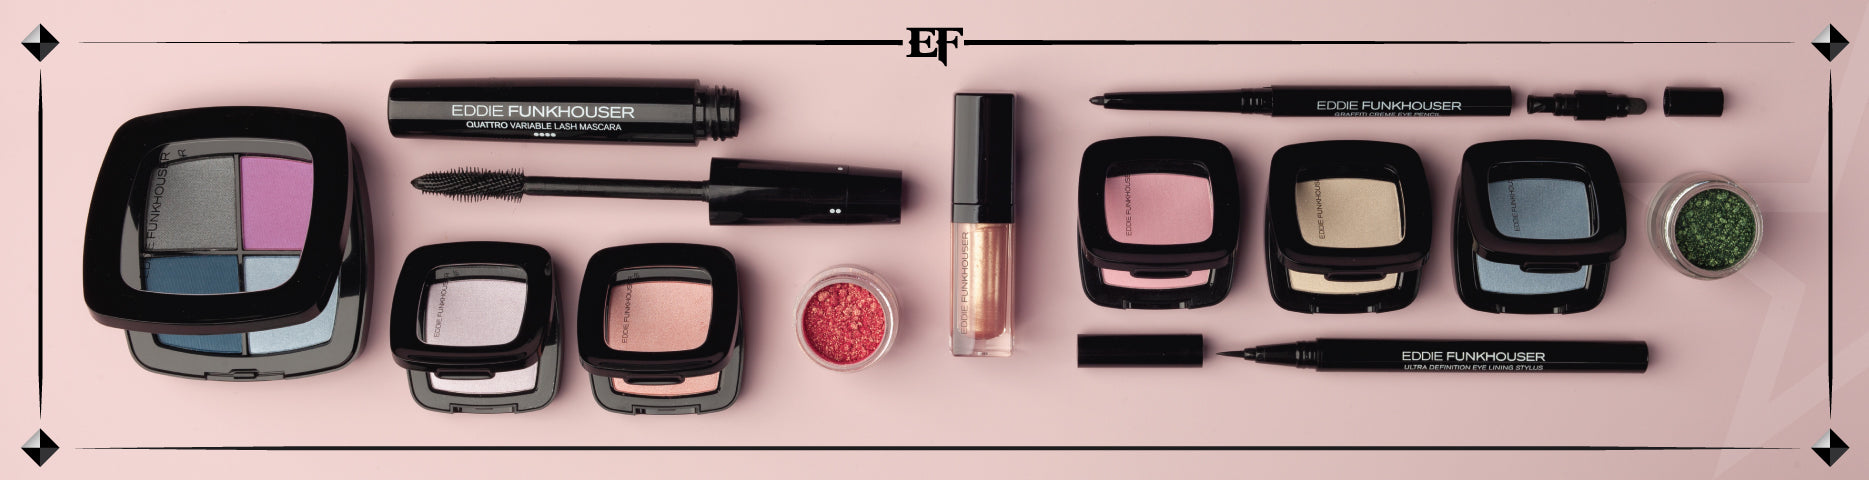 EDDIE FUNKHOUSER Cosmetics Eye Products